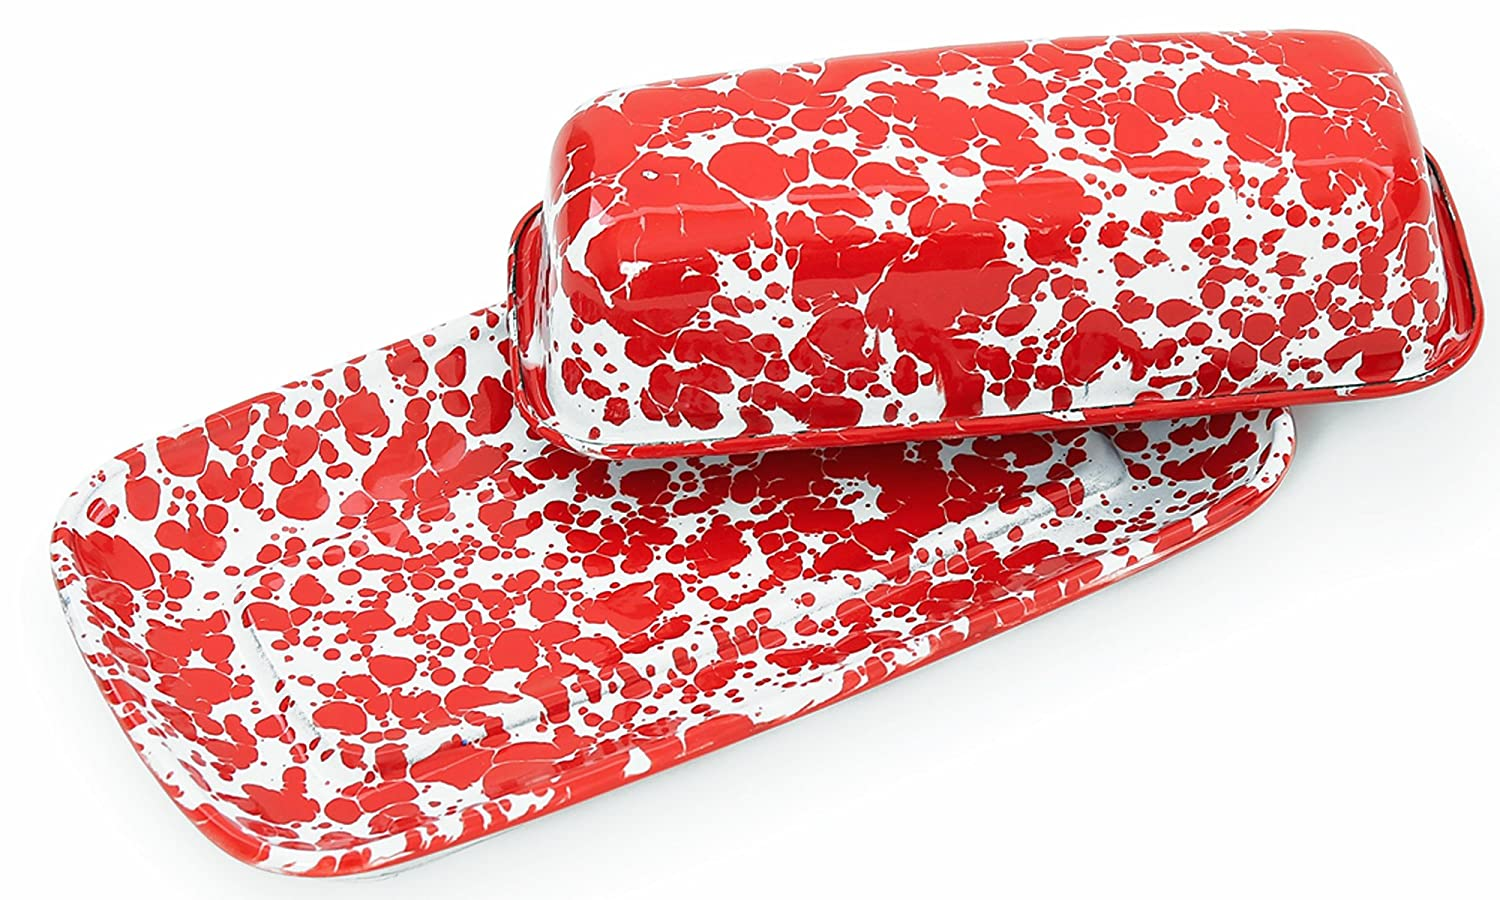 Enamelware Covered Butter Dish - Red Marble